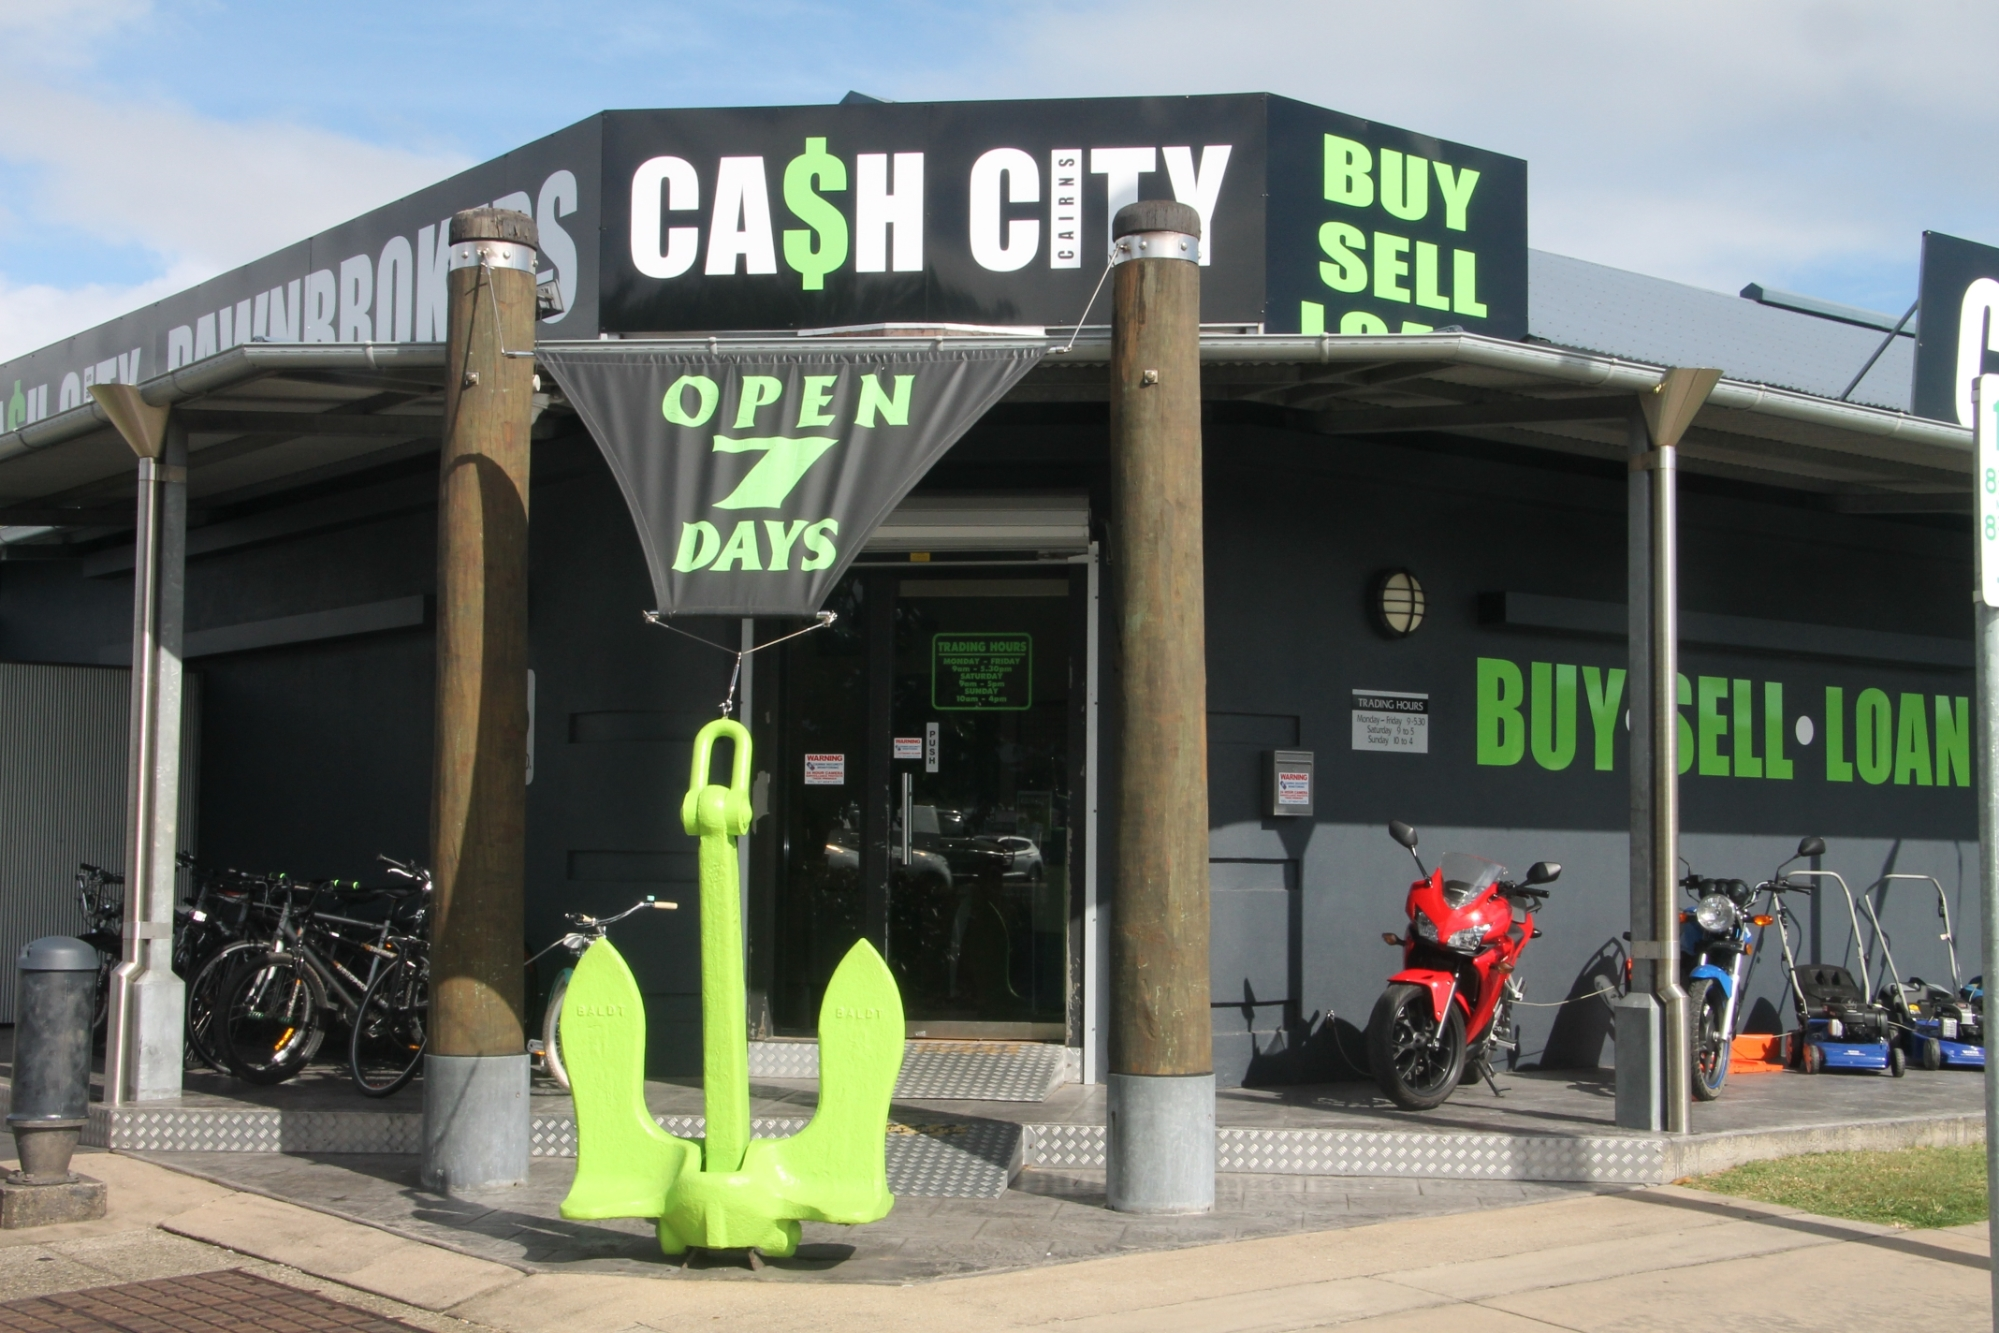 Cash loan places in waxahachie texas picture 1